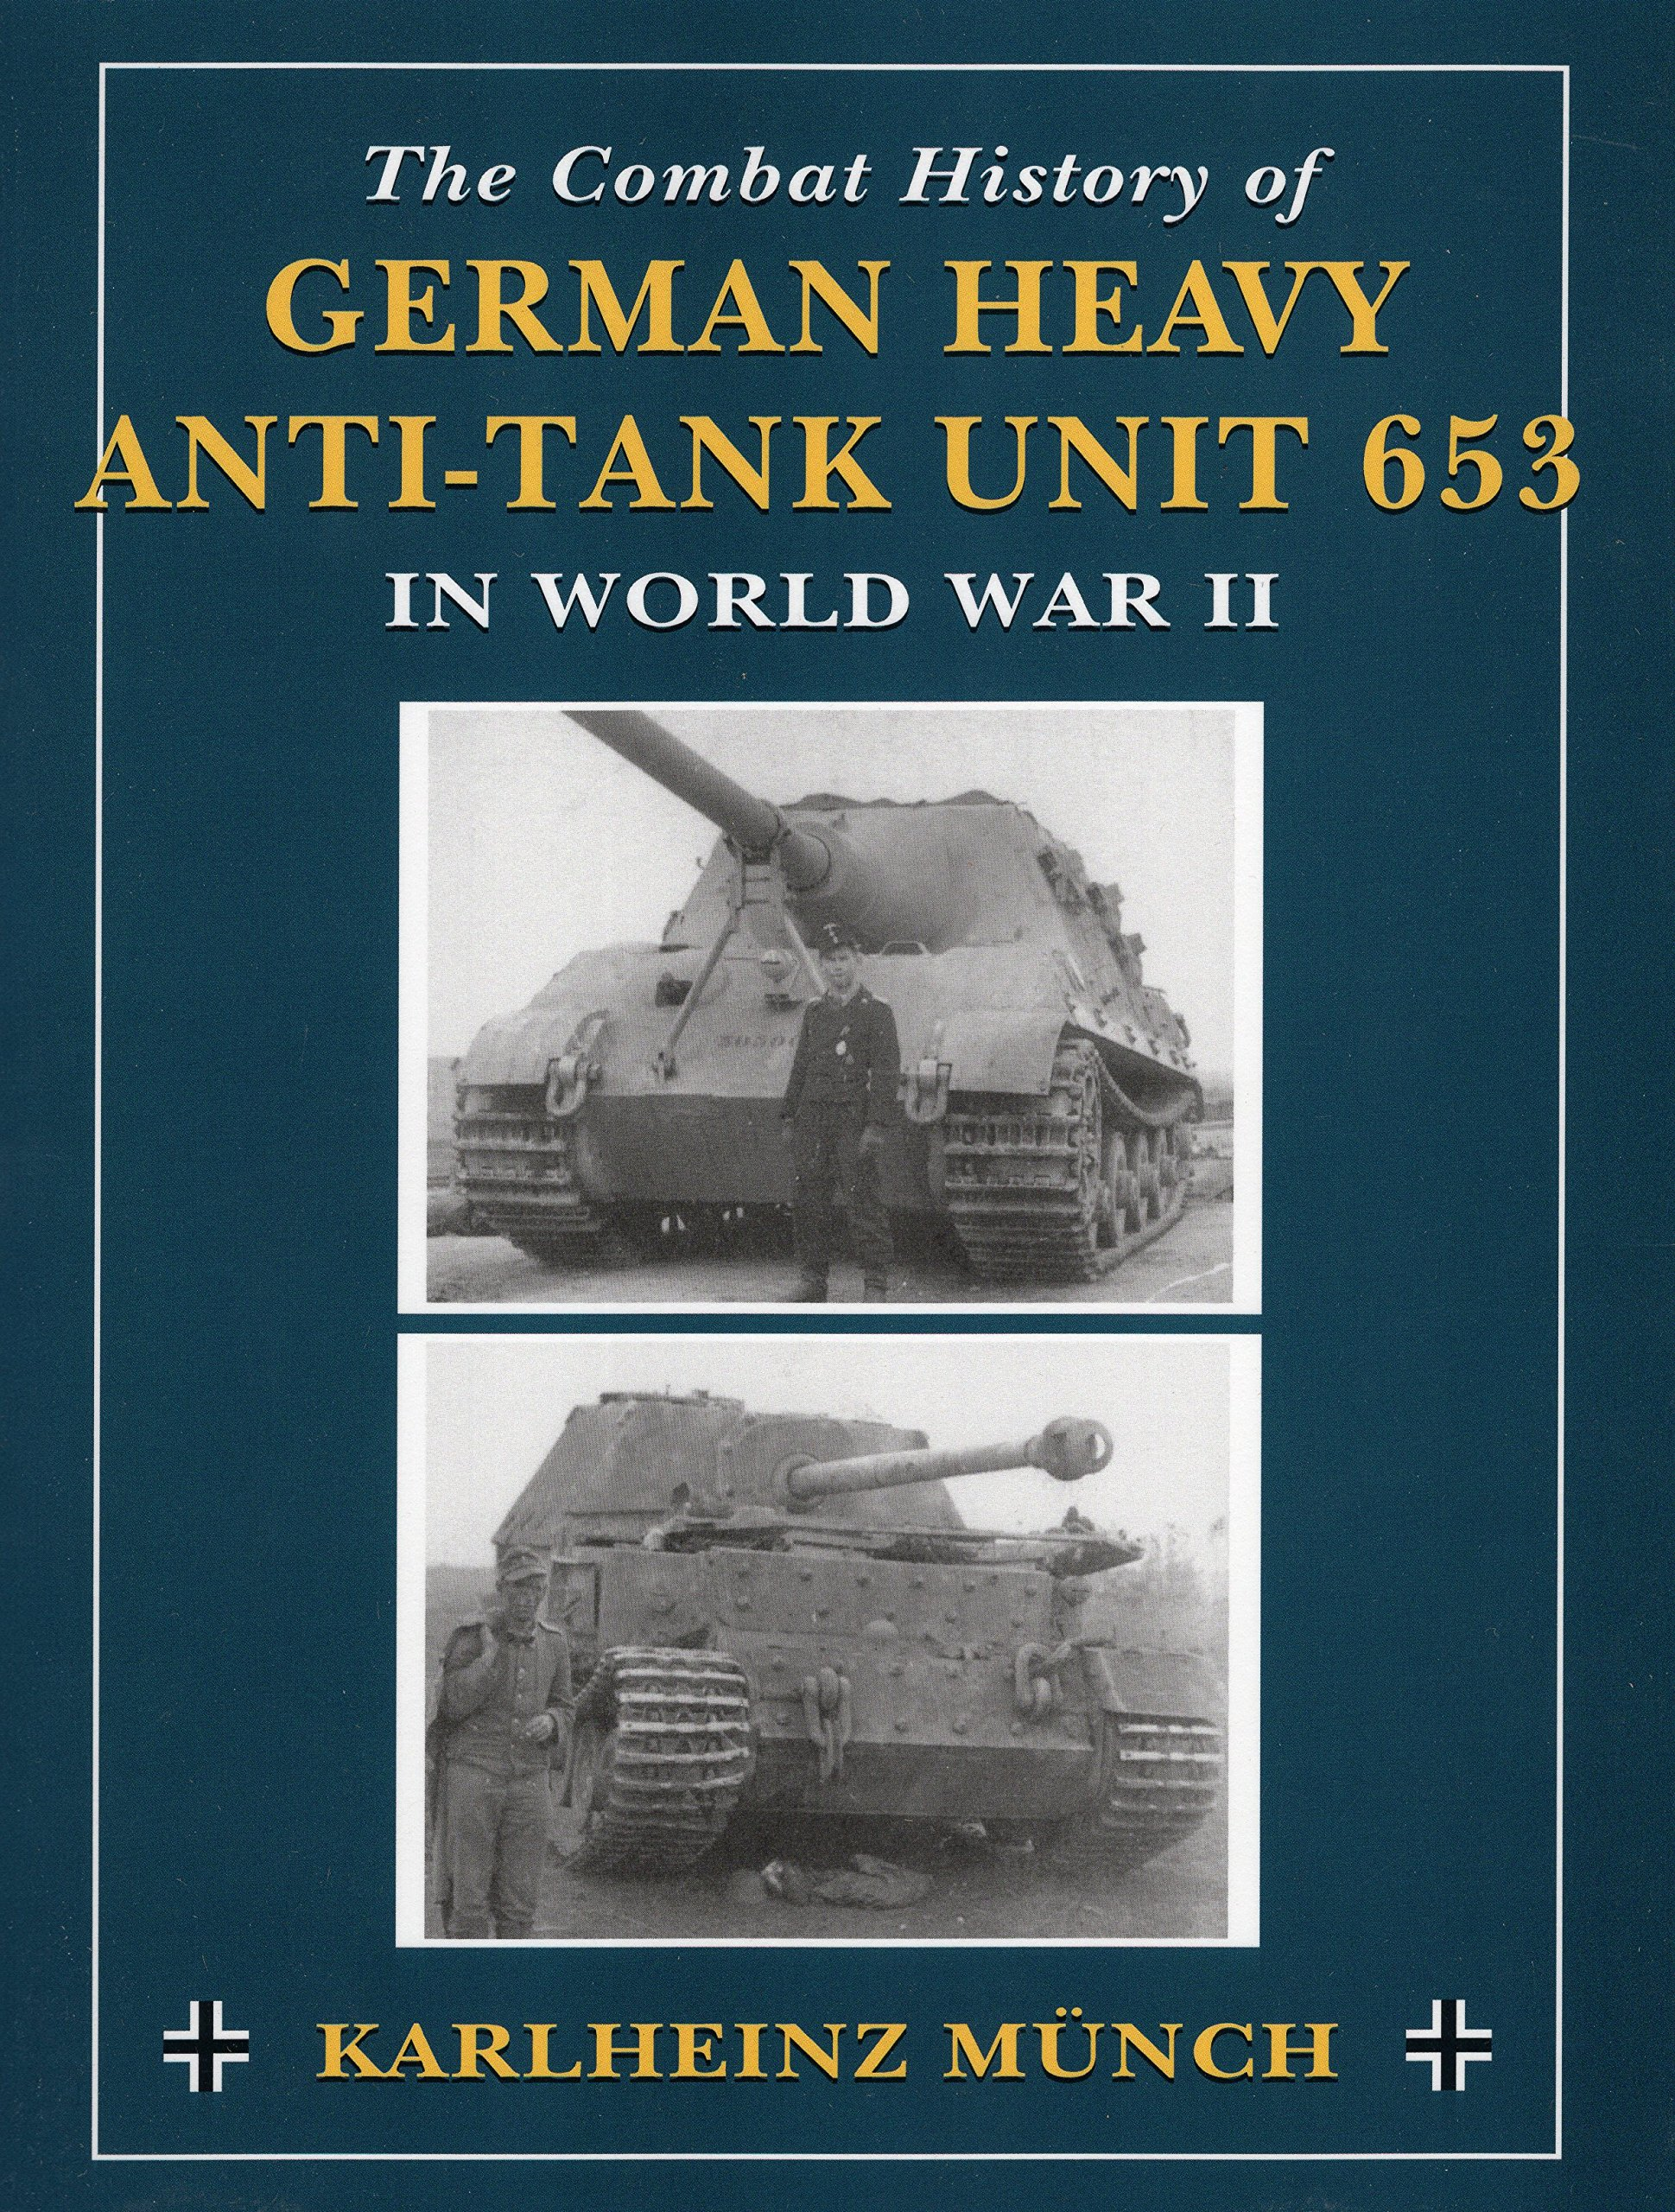 The Combat History of German Heavy Anti-Tank Unit 653 in World War II:  Karlheinz Munch: 9780811732420: Amazon.com: Books